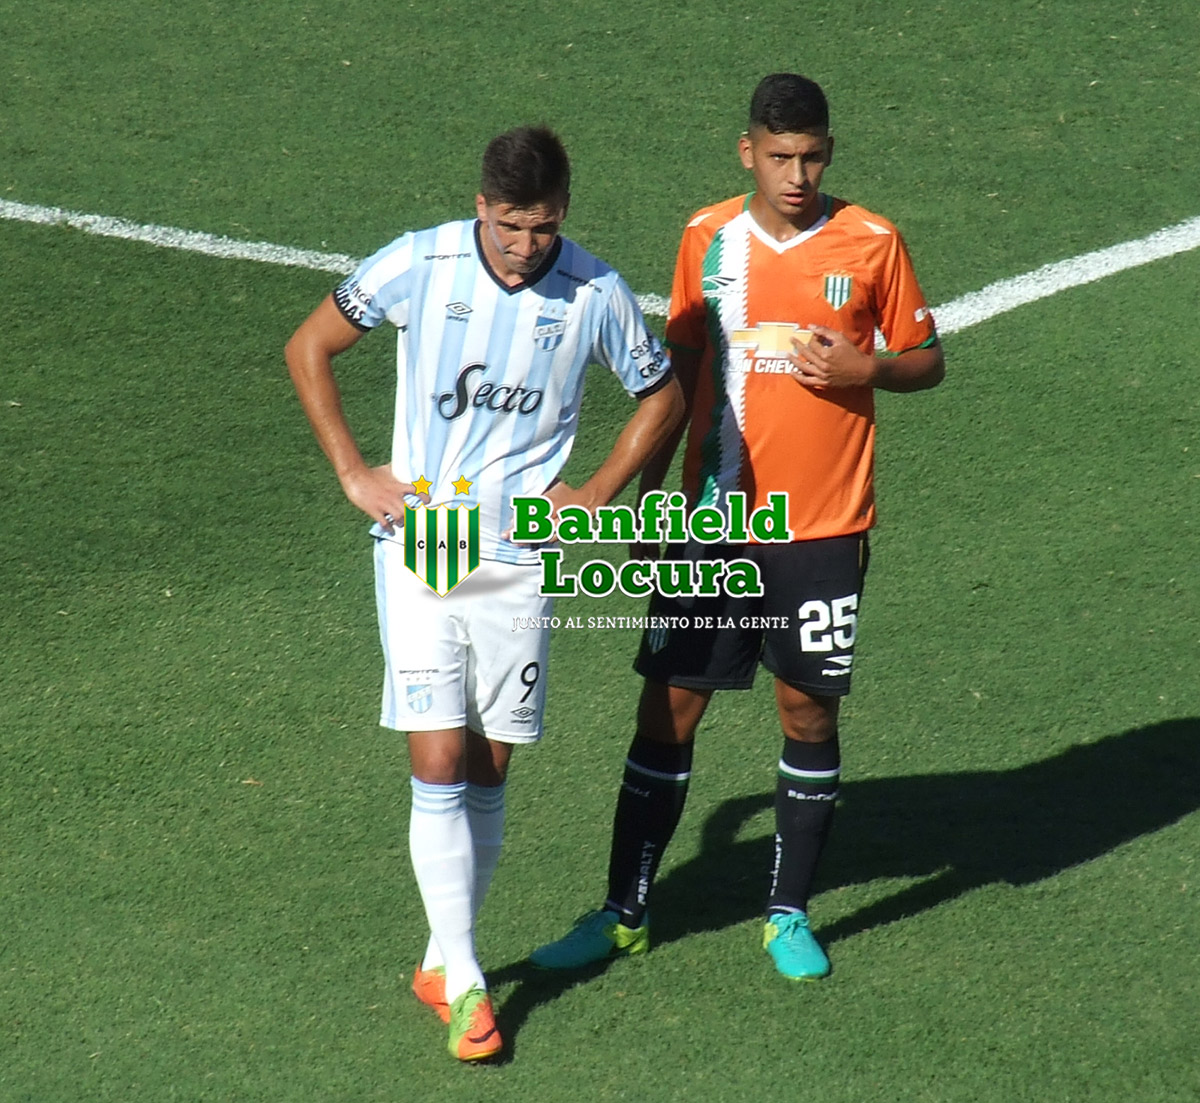 banfield-atletico-tucuman-0015